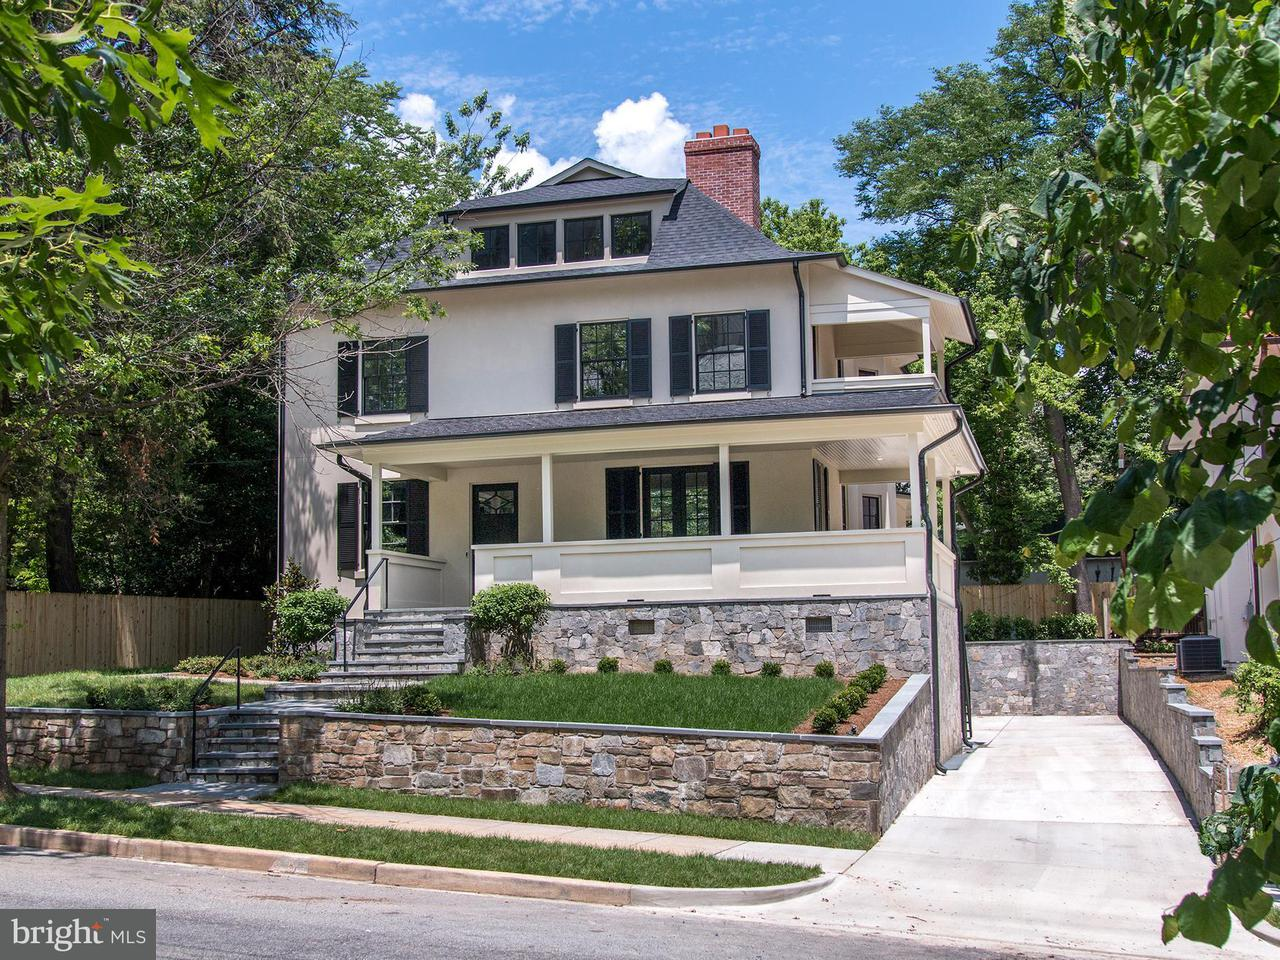 Single Family for Sale at 3515 Woodley Rd NW Washington, District Of Columbia 20016 United States